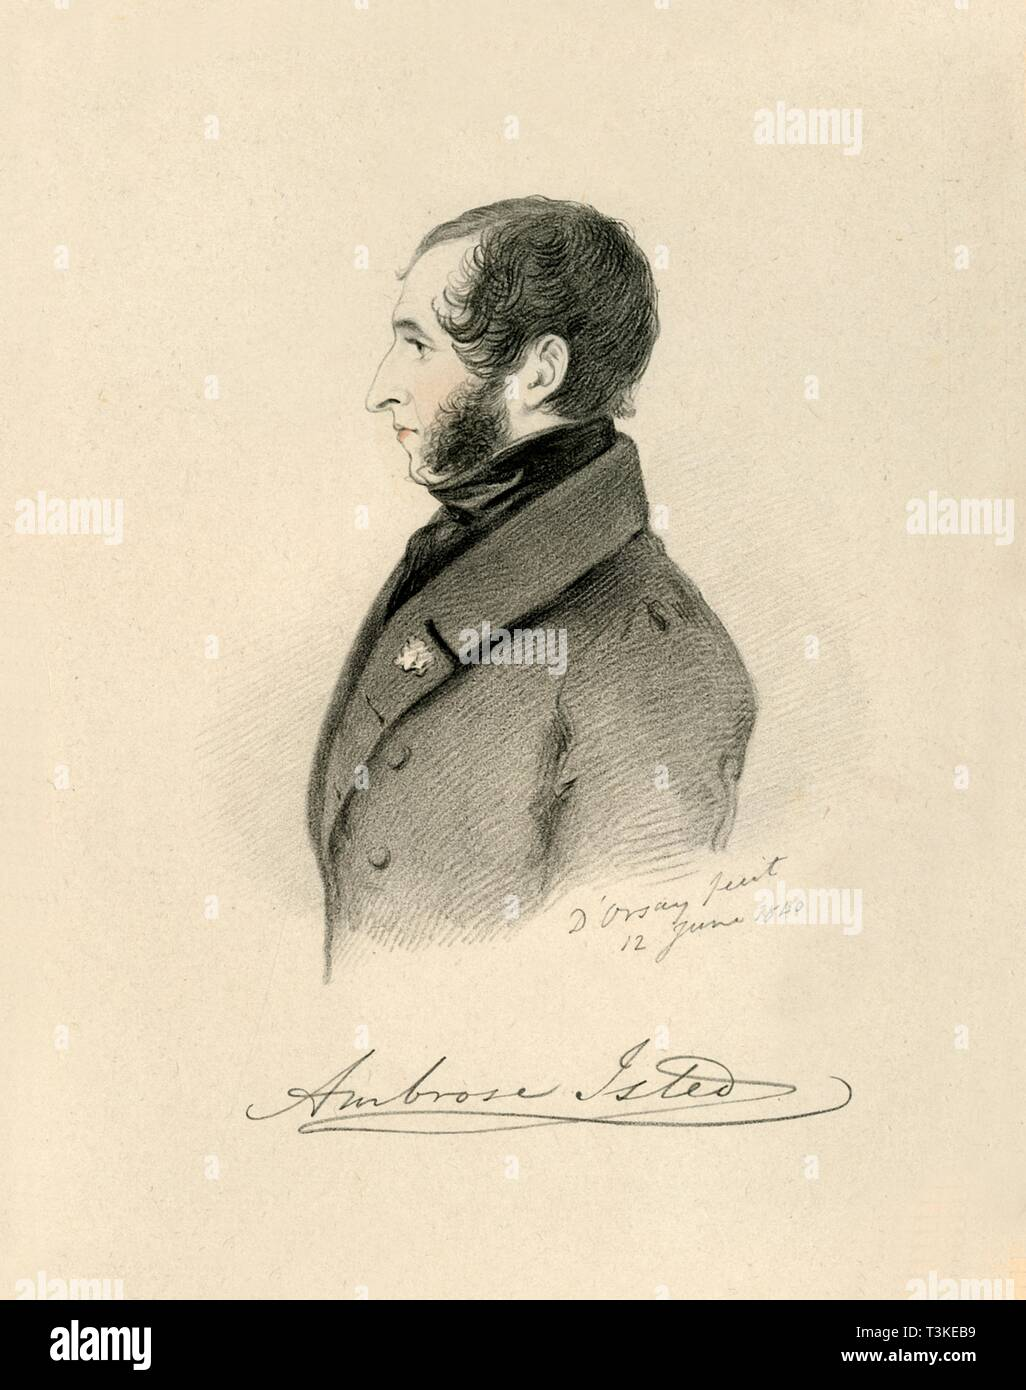 "'Ambrose Isted', 1840. From ""Portraits by Count D'Orsay"", an album assembled by Lady Georgiana Codrington. [1850s] Stock Photo"